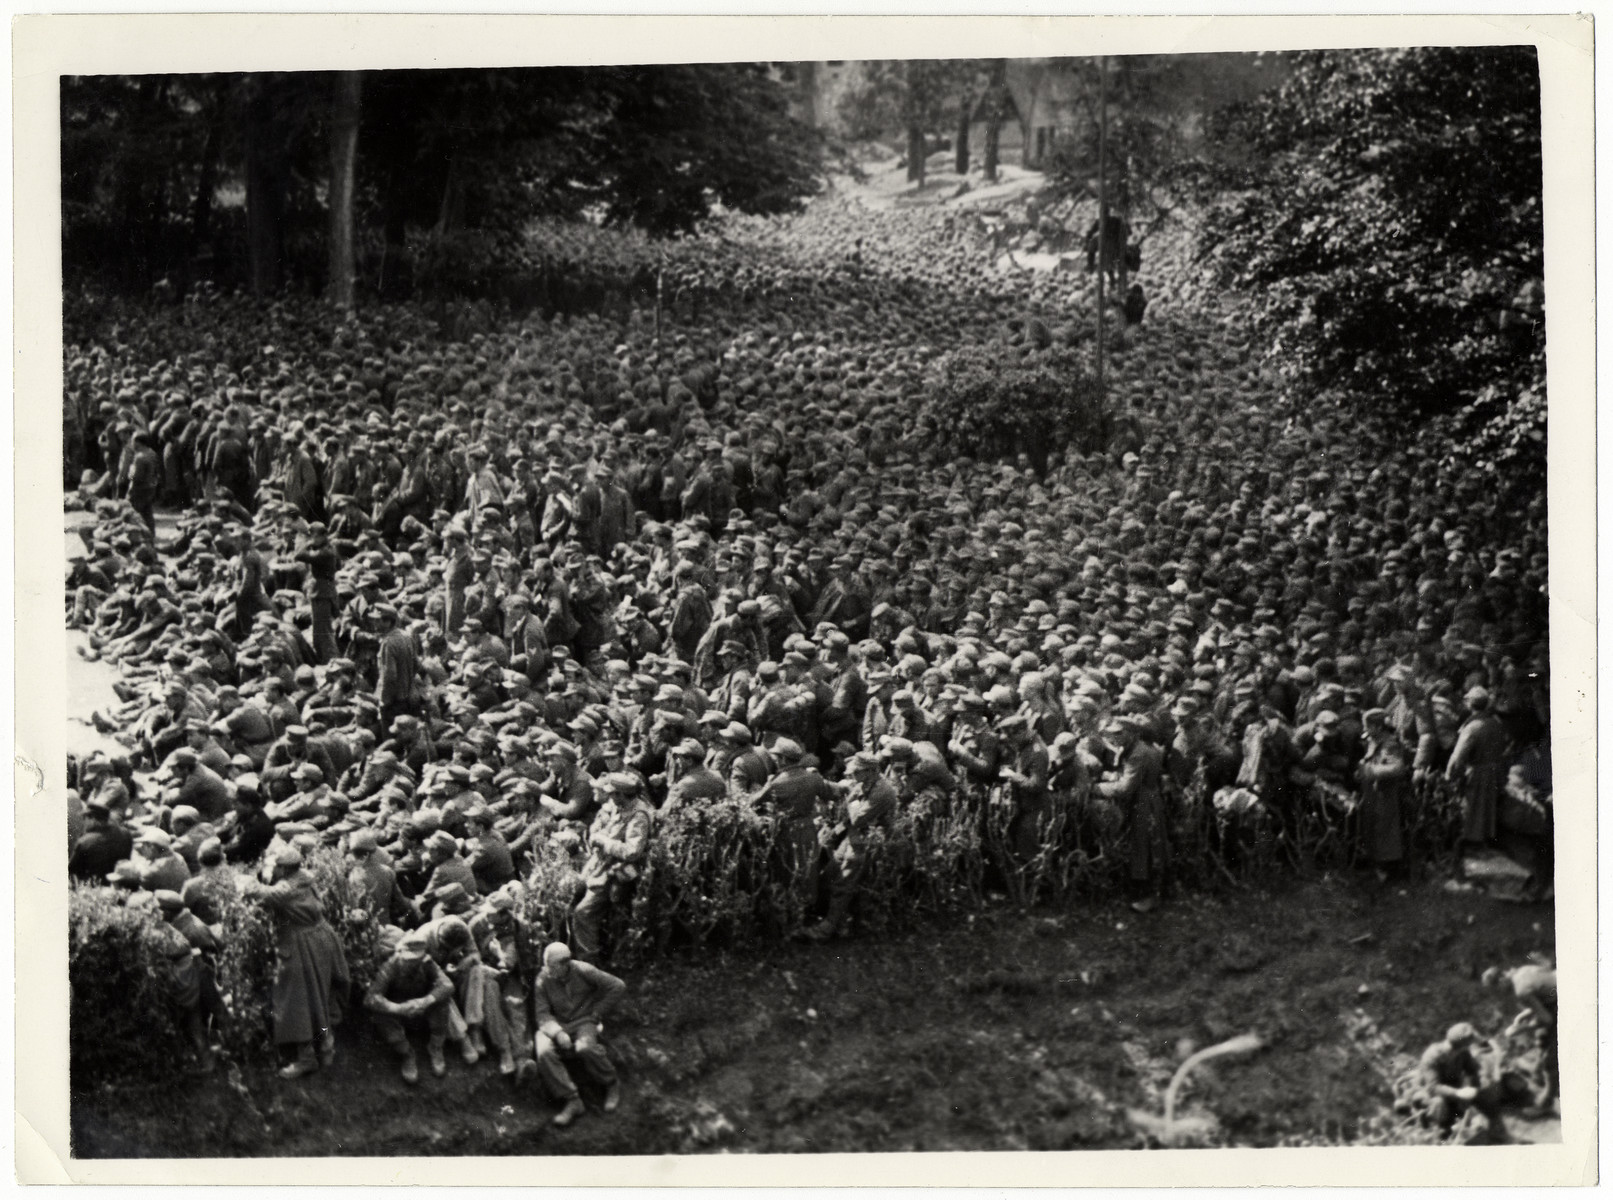 Thousands of German prisoners crowd into the 5th Army POW cage at Vicenza, Italy.